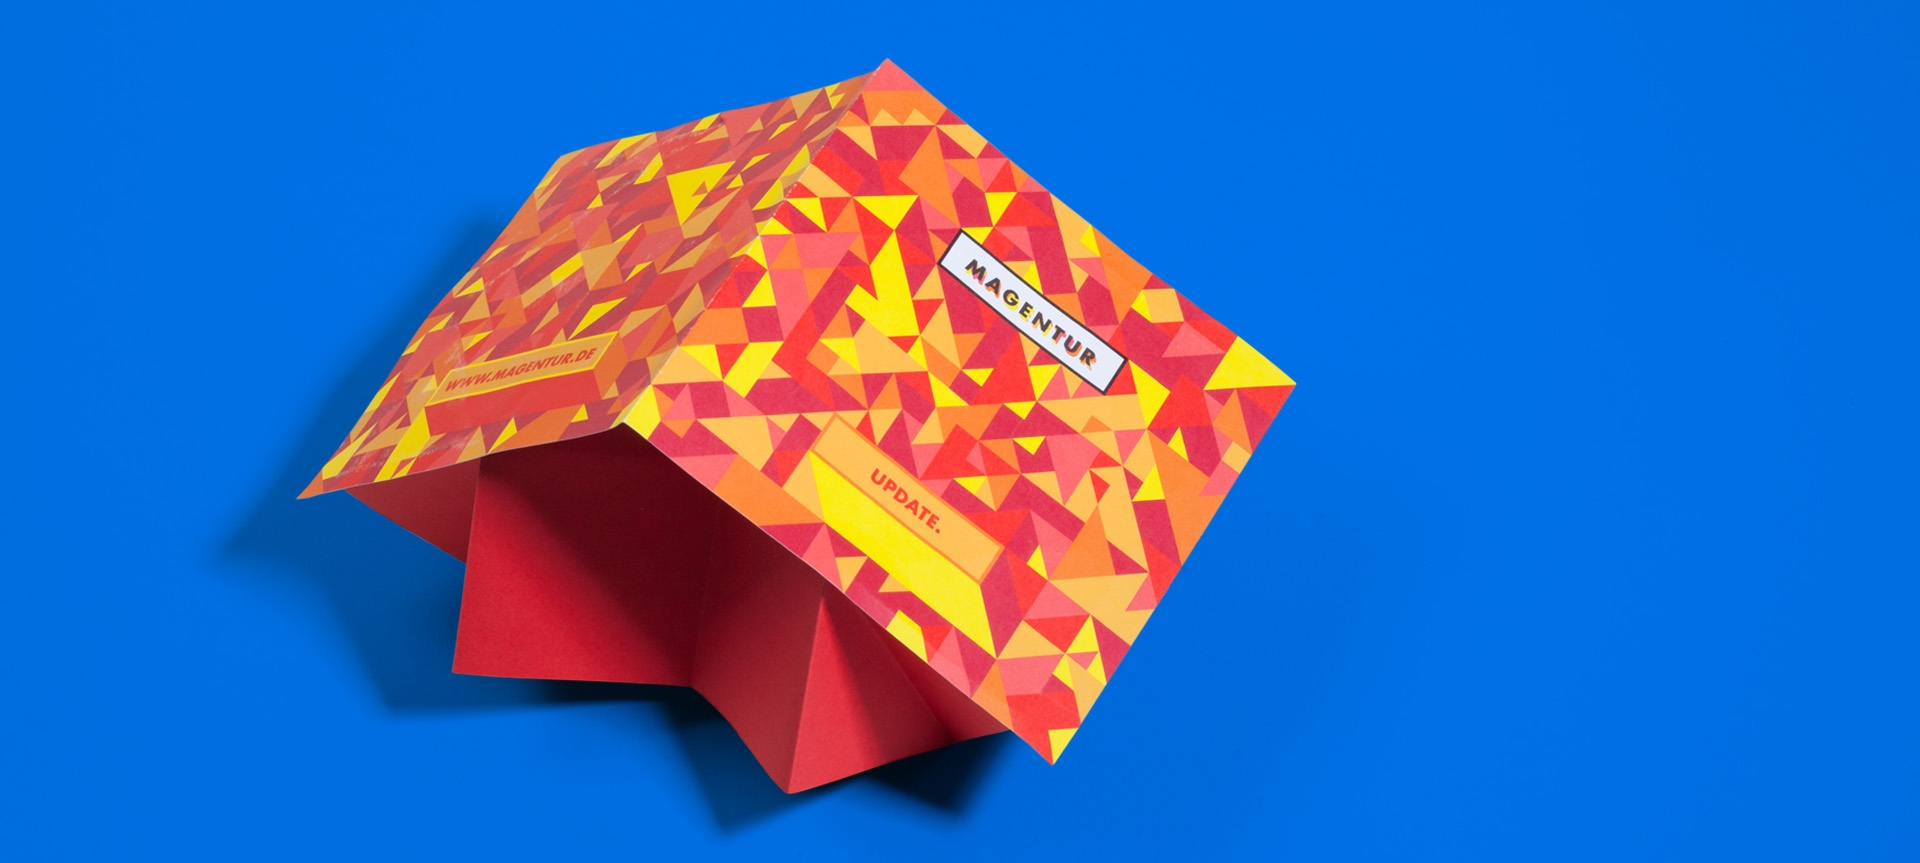 Martin Gnadt — Kommunikationsdesign FOLDED MAILINGS